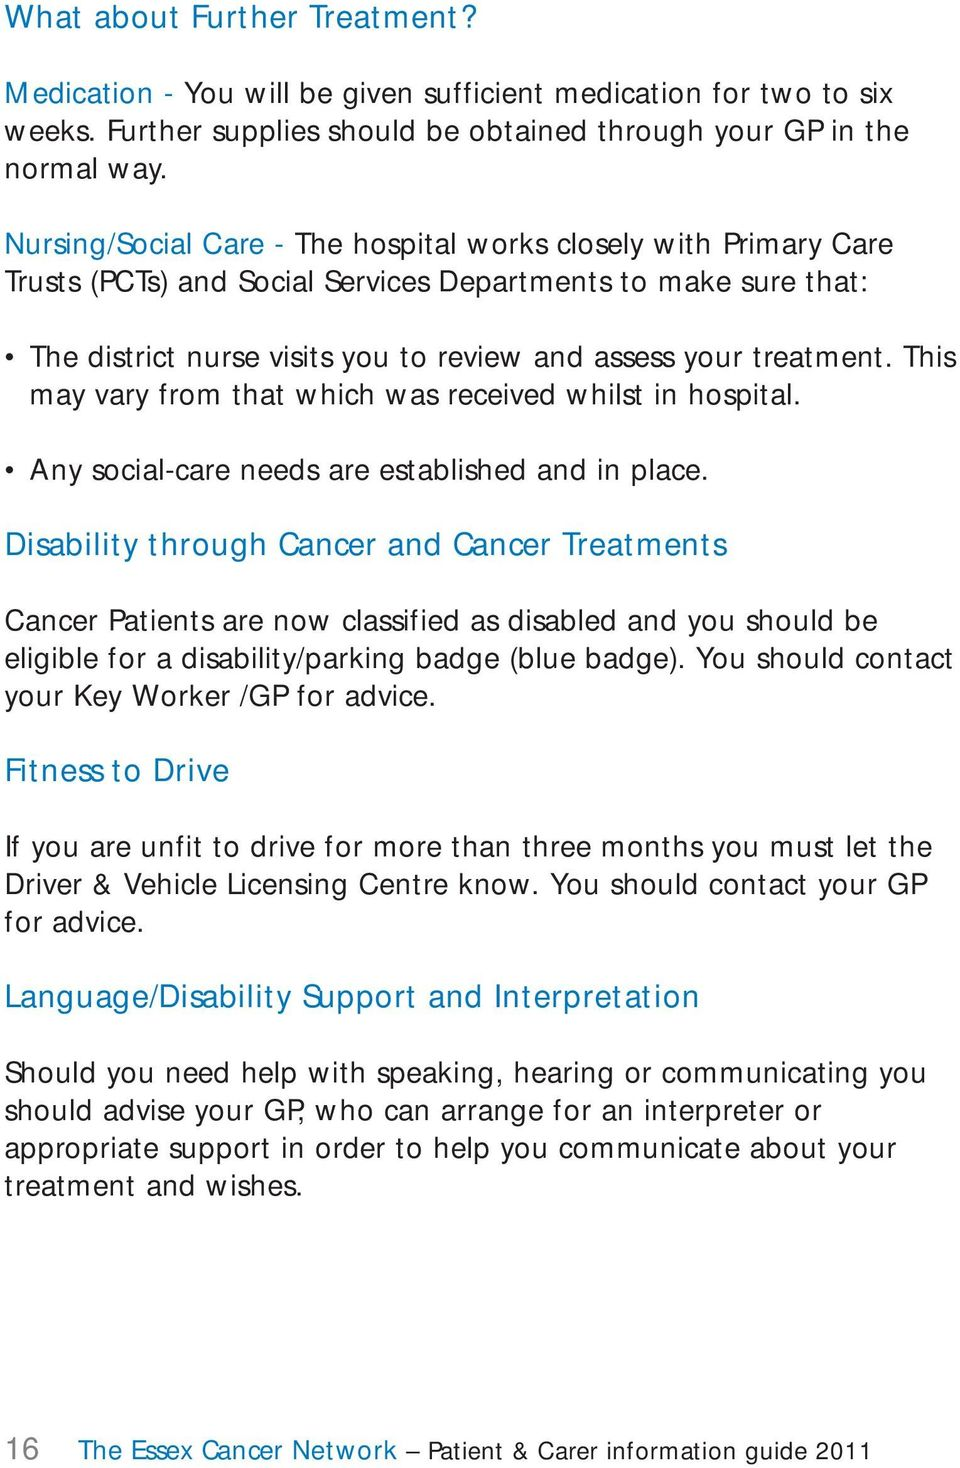 This may vary from that which was received whilst in hospital. Any social-care needs are established and in place.